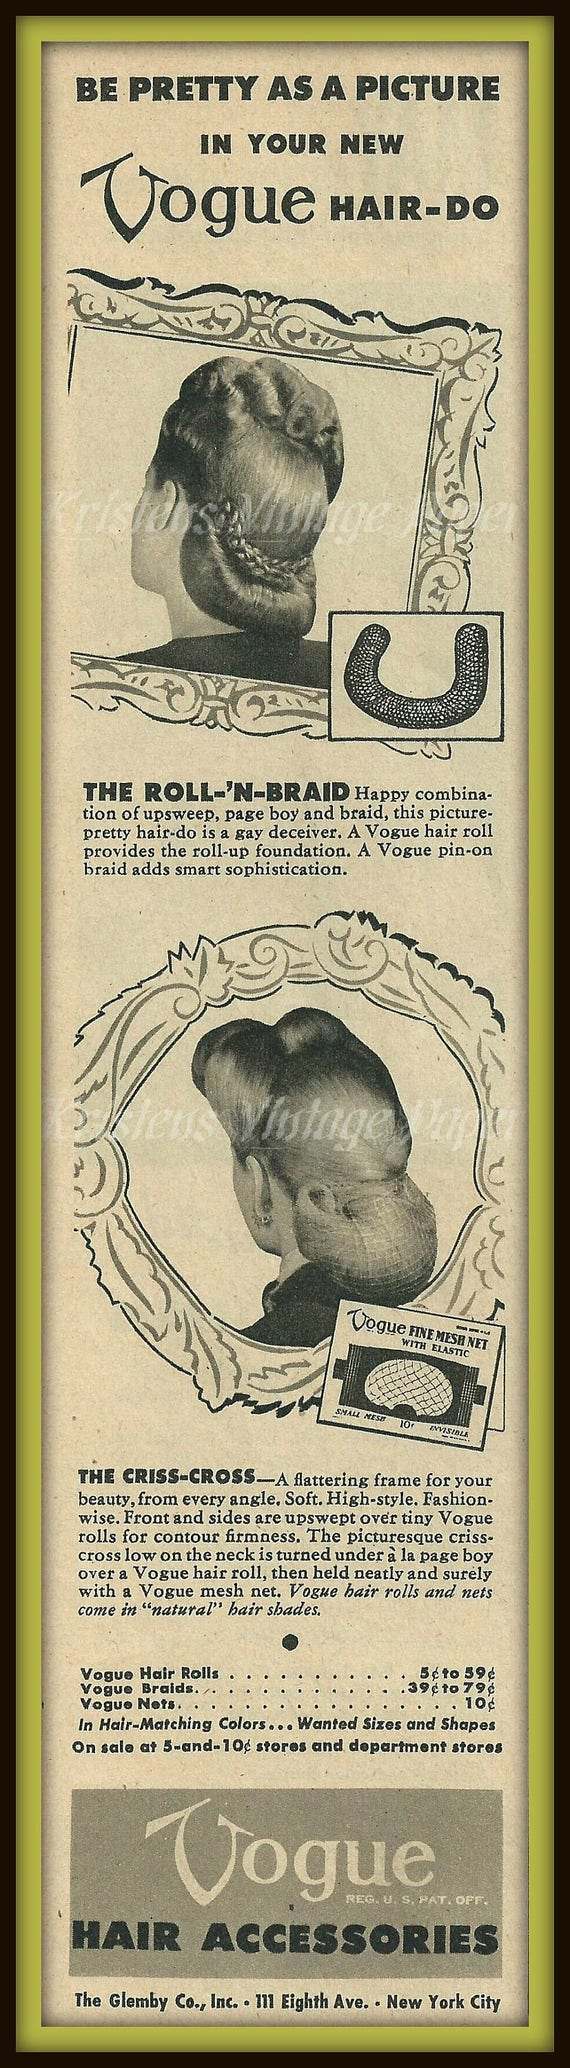 1945 Vintage Ad Vogue Hair Accessories Hairdo Hairstyle May Co Womens Fashion Bibber Jacket Wine Leaves Sportswear 1940s